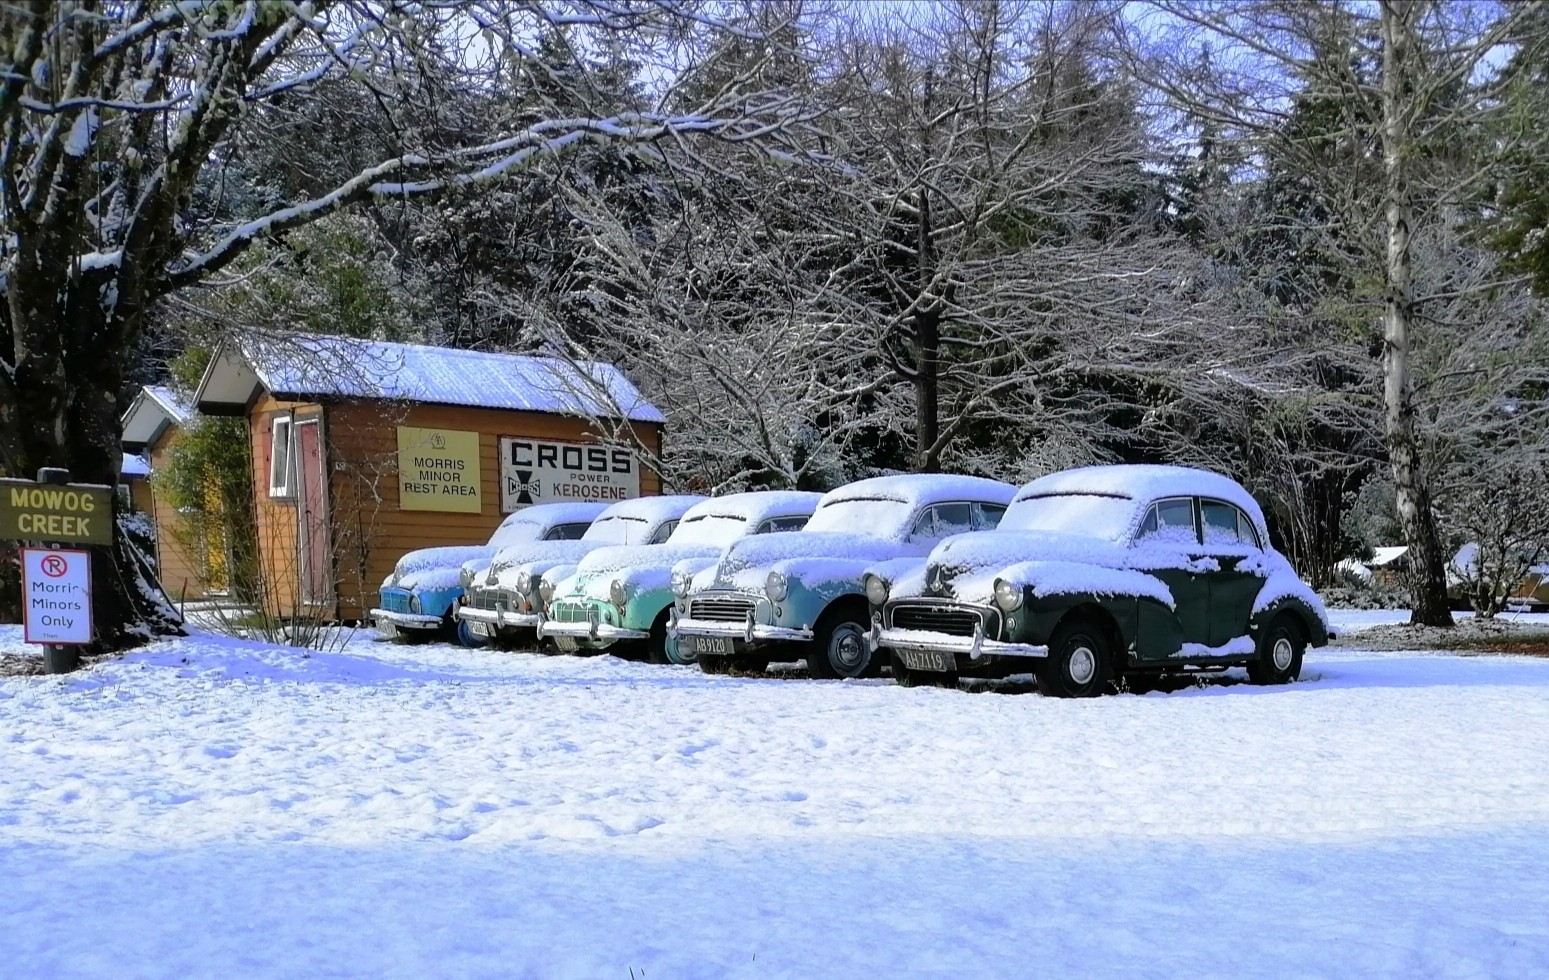 A row of Morris Minor cars in winter